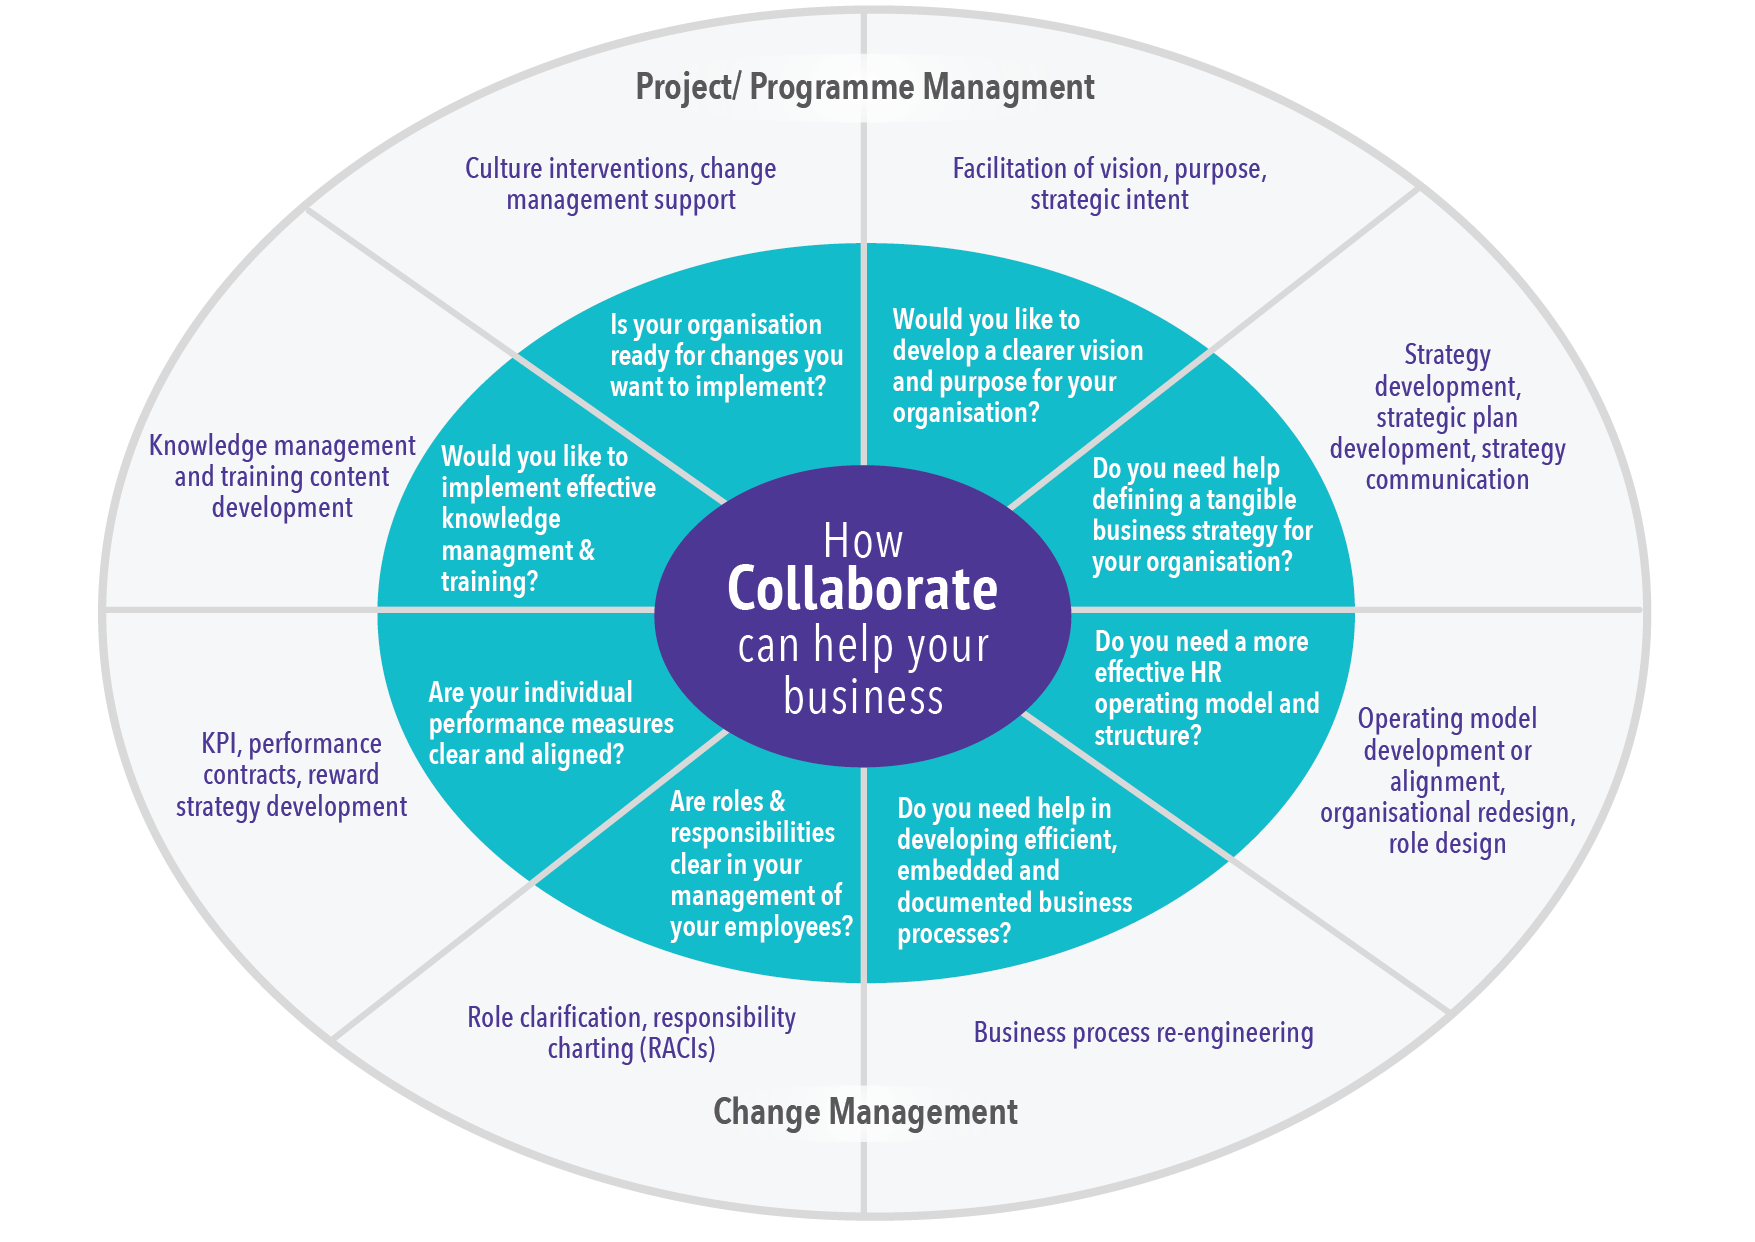 How Collaborate can help your business